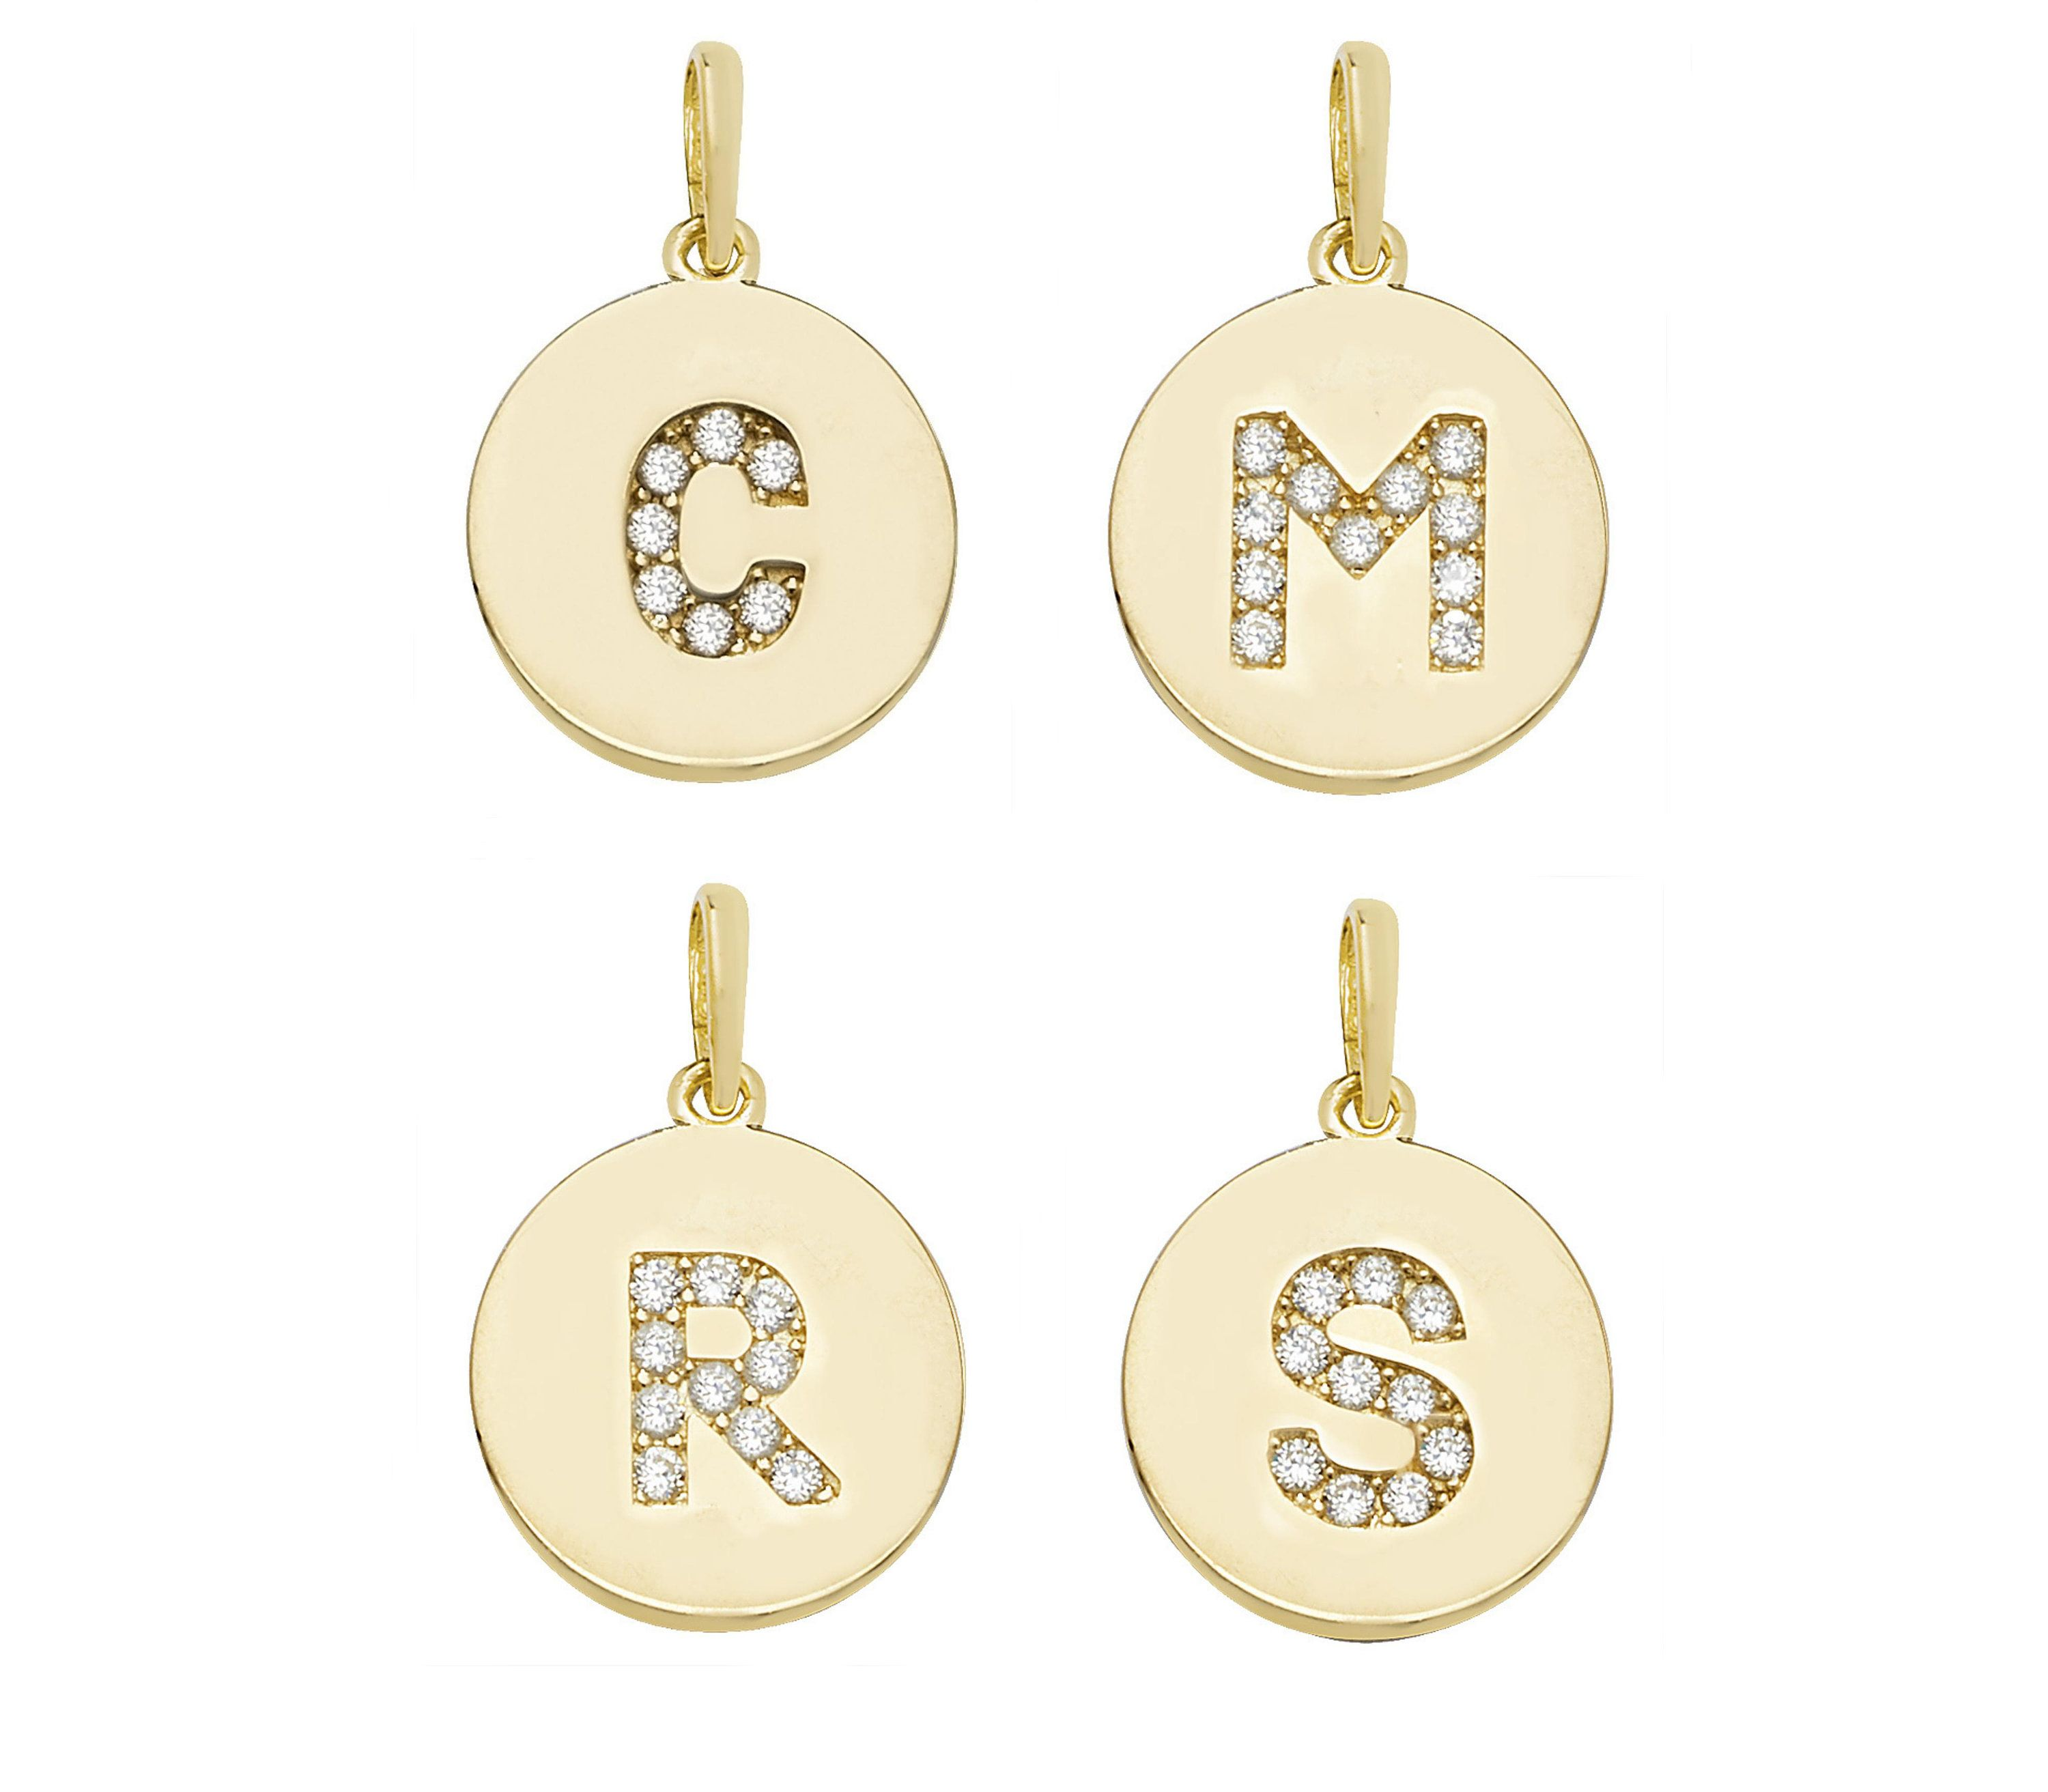 82cbbd5db Get Kaye Adams' look by wearing one of these gorgeous Personalised 9ct  Yellow Gold CZ Initial 13mm Round Disc Pendants.